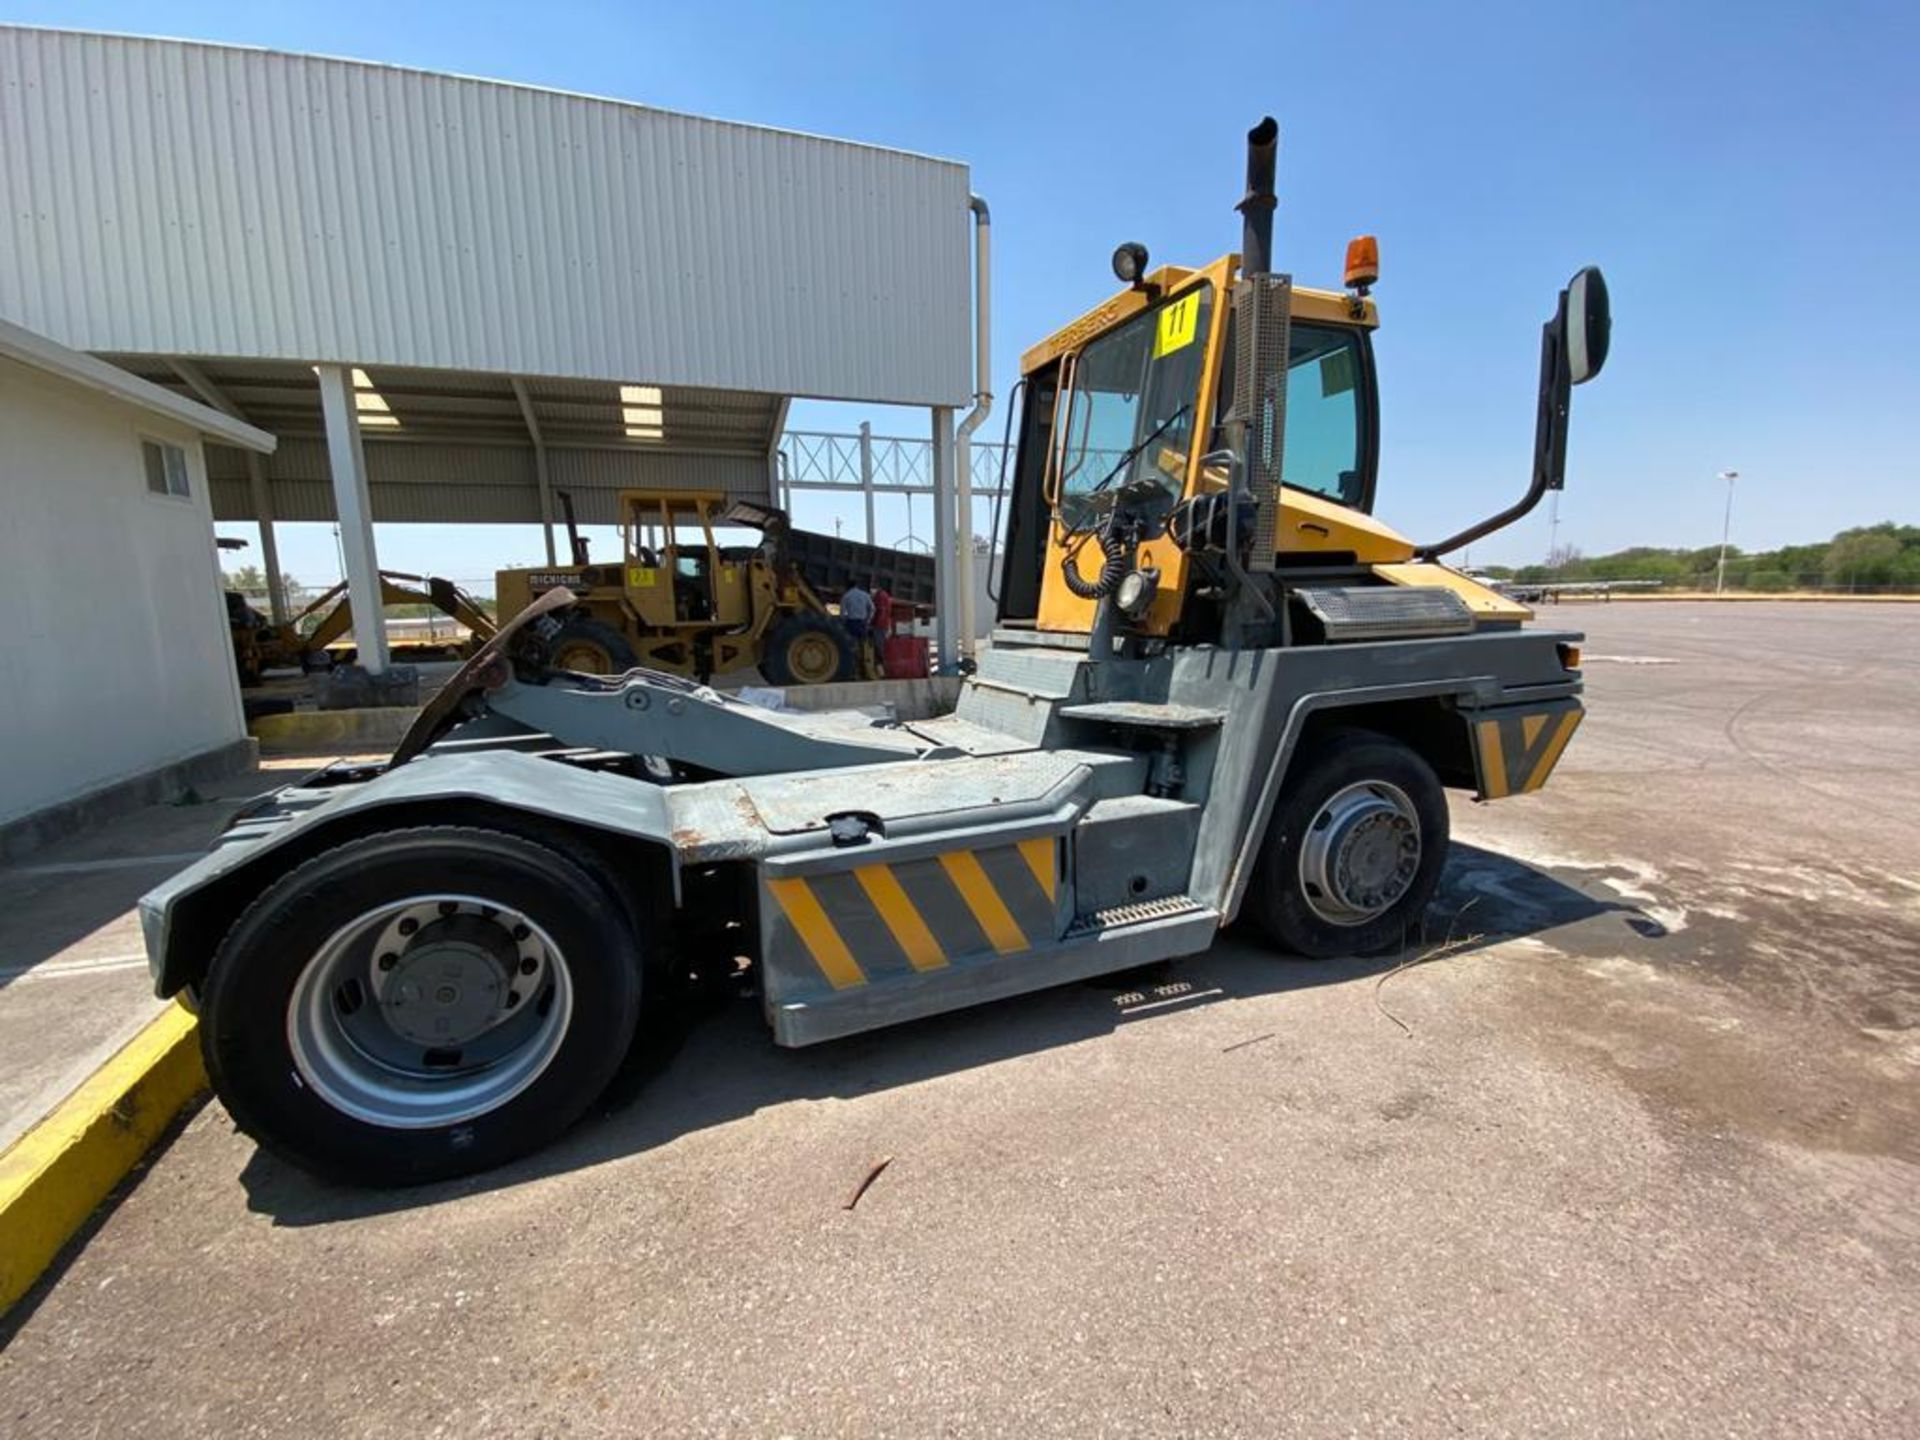 Terberg Capacity 2002 Terminal Tractor, automatic transmission, with Volvo motor - Image 17 of 57